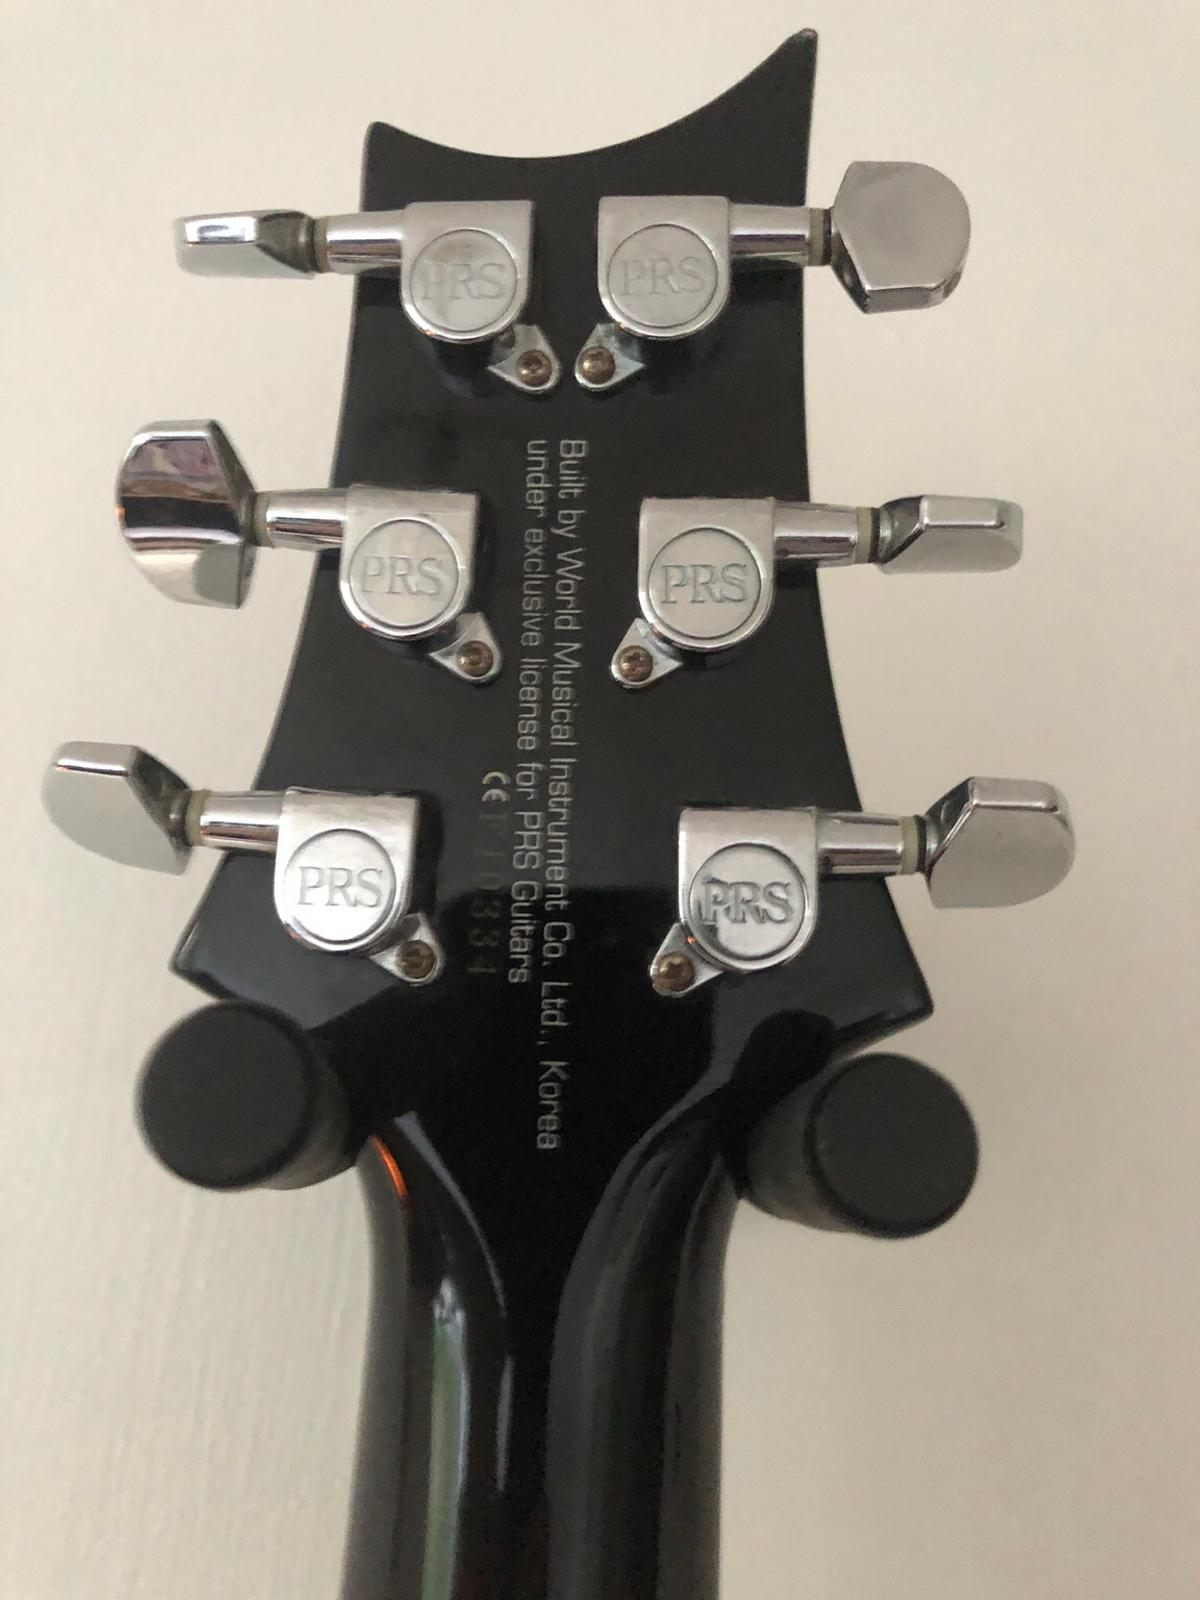 PRS electric guitar in M25 Salford for £220 00 for sale - Shpock